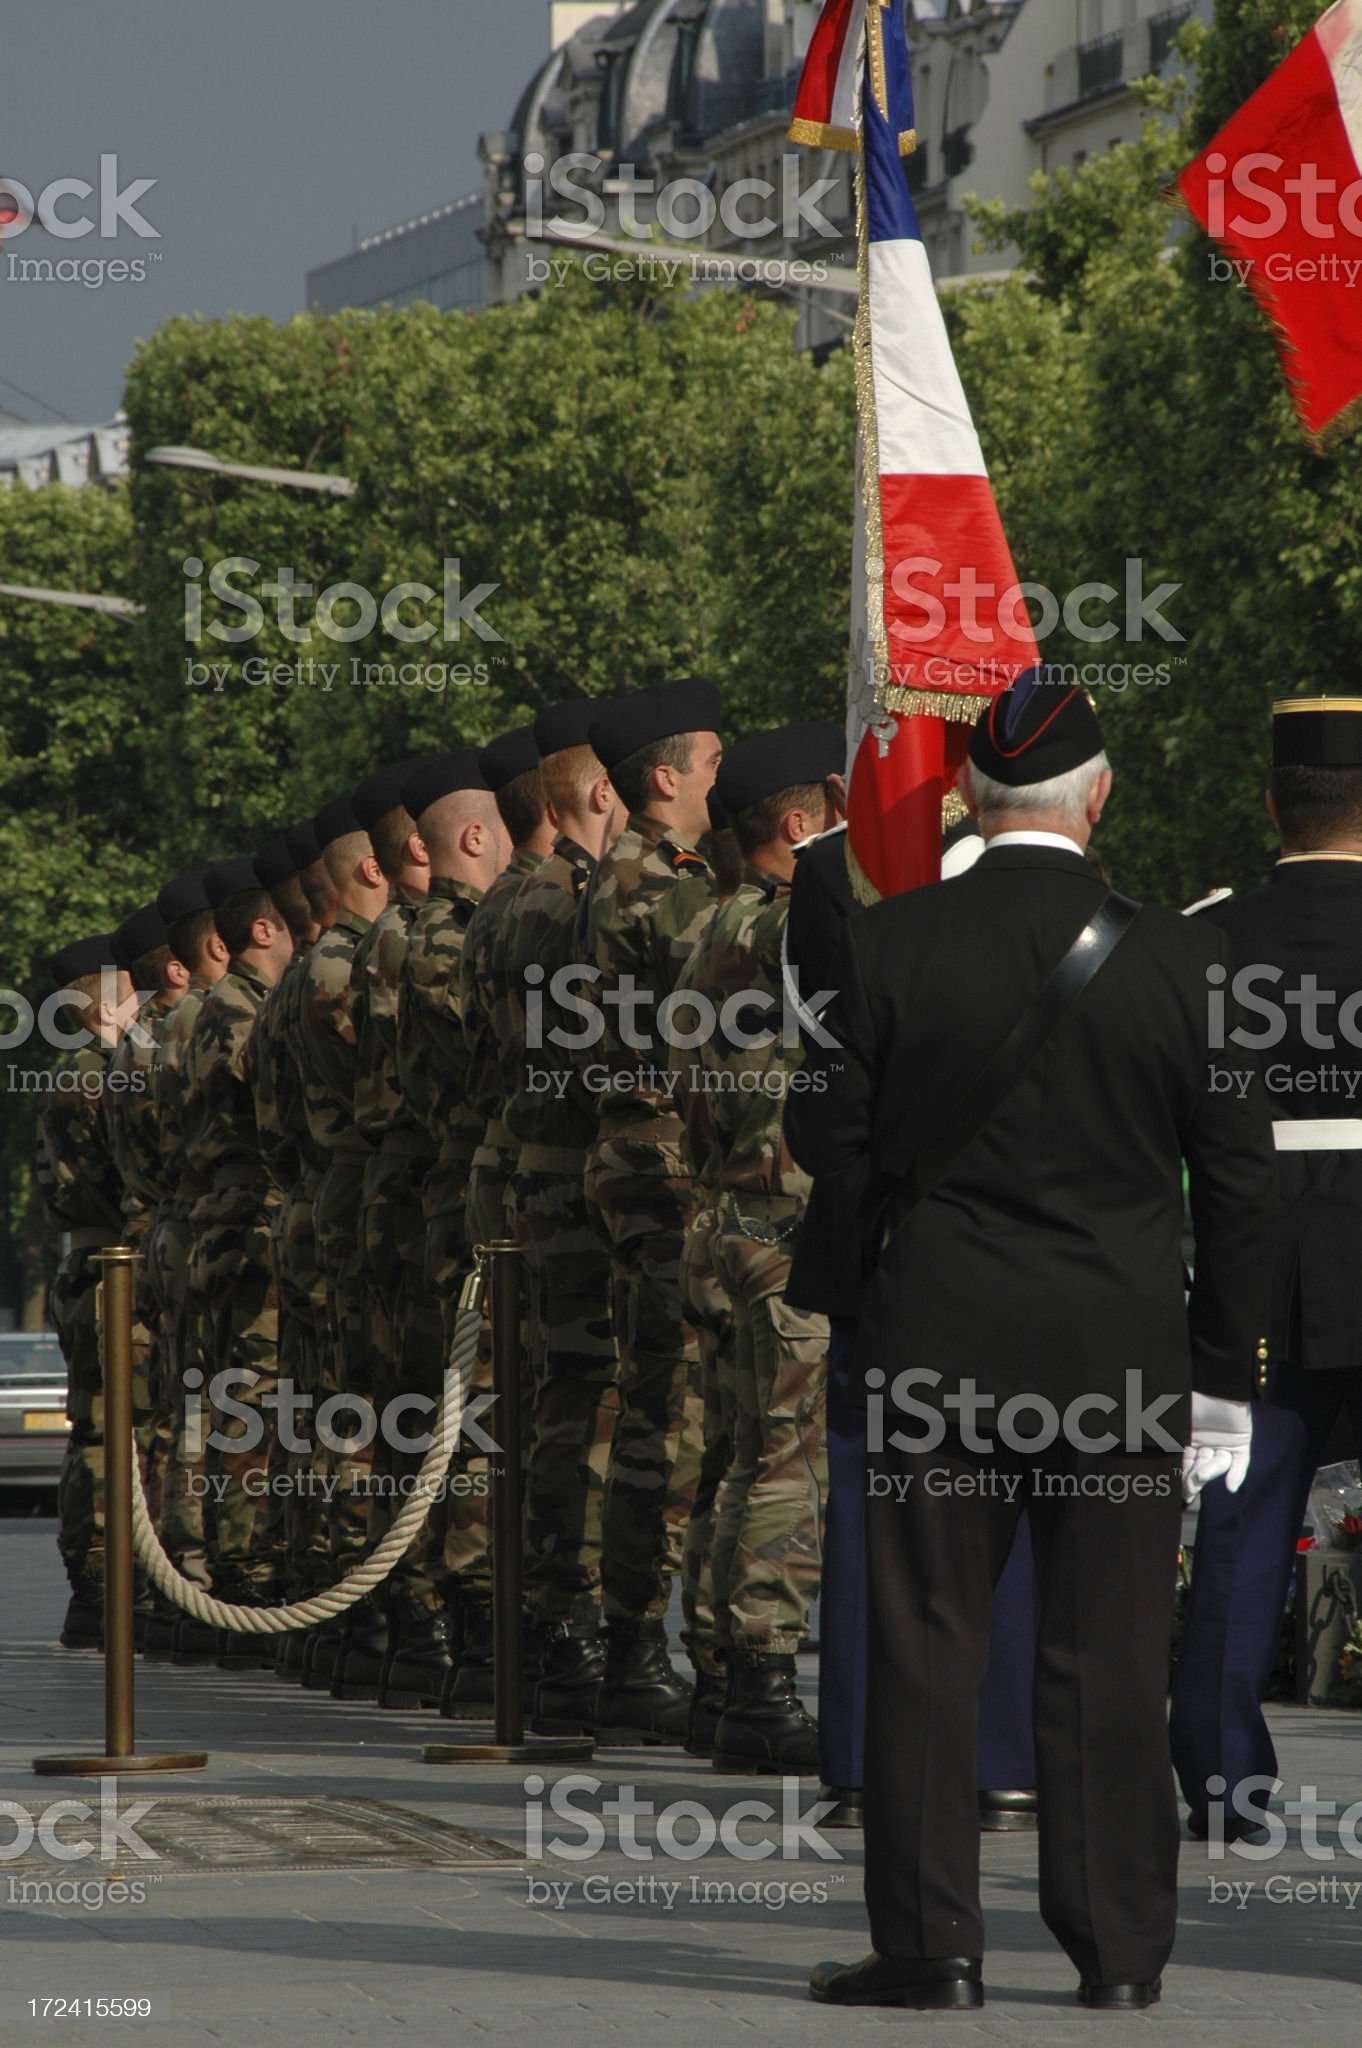 Soldat inconnu royalty-free stock photo